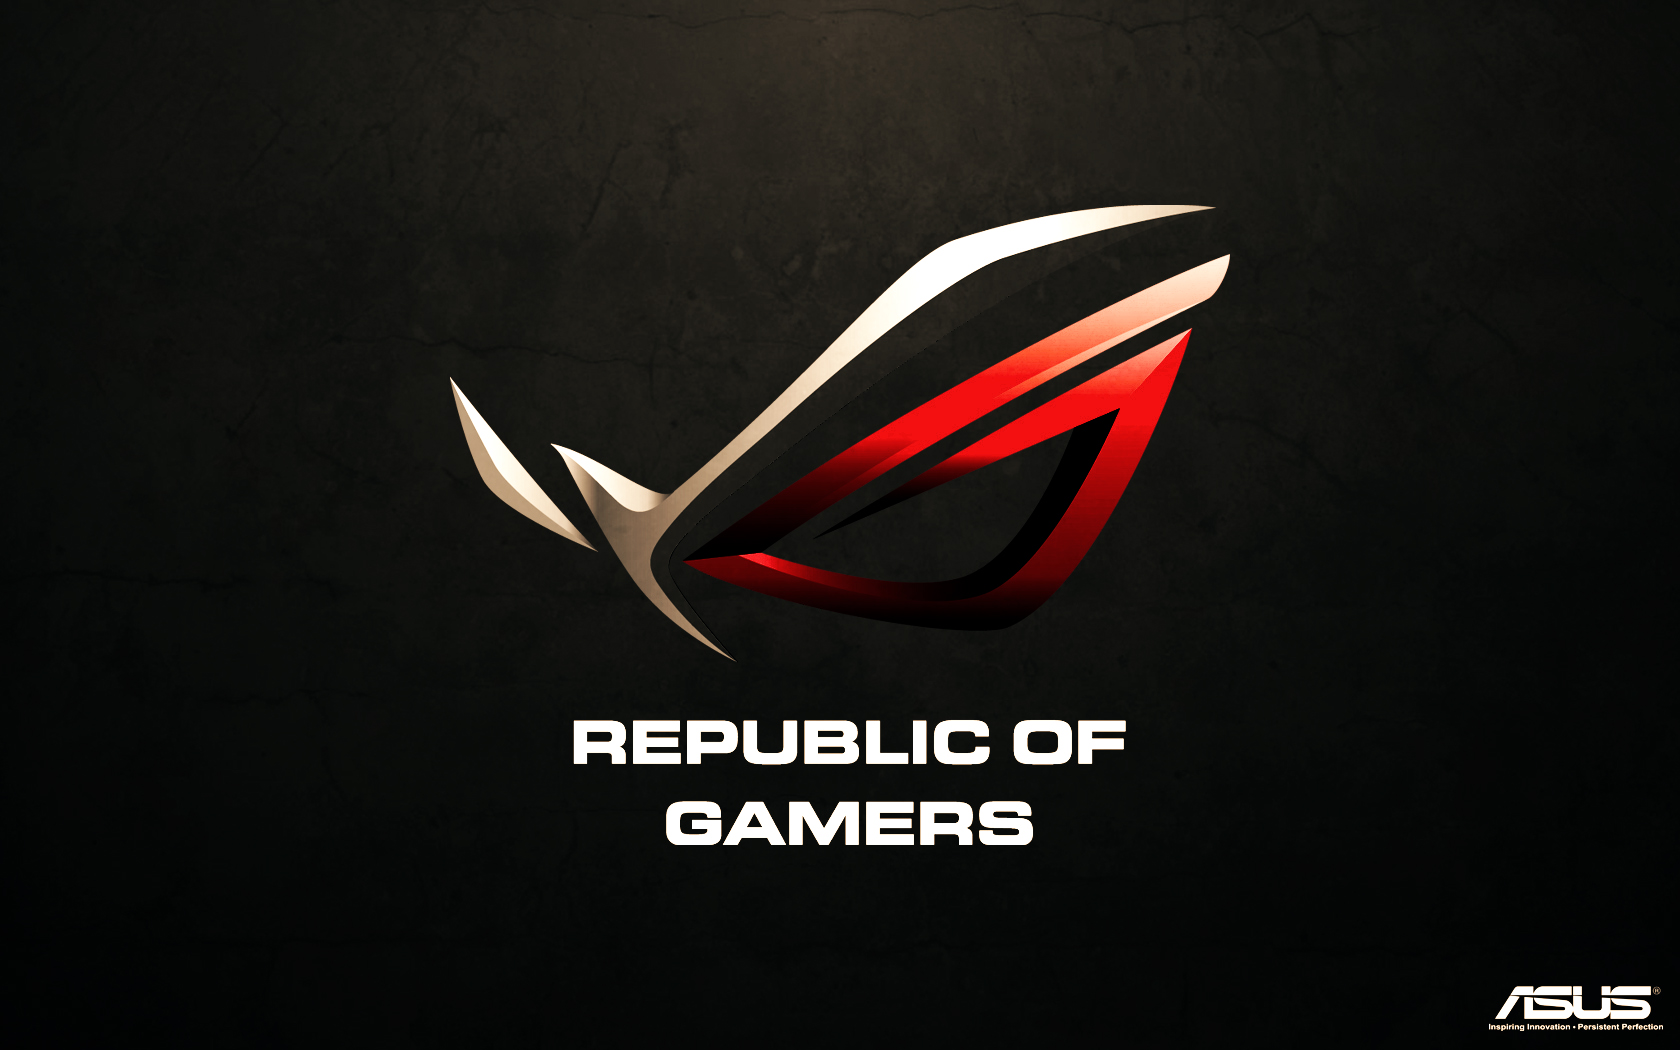 49+] ROG Wallpaper Theme Pack on WallpaperSafari